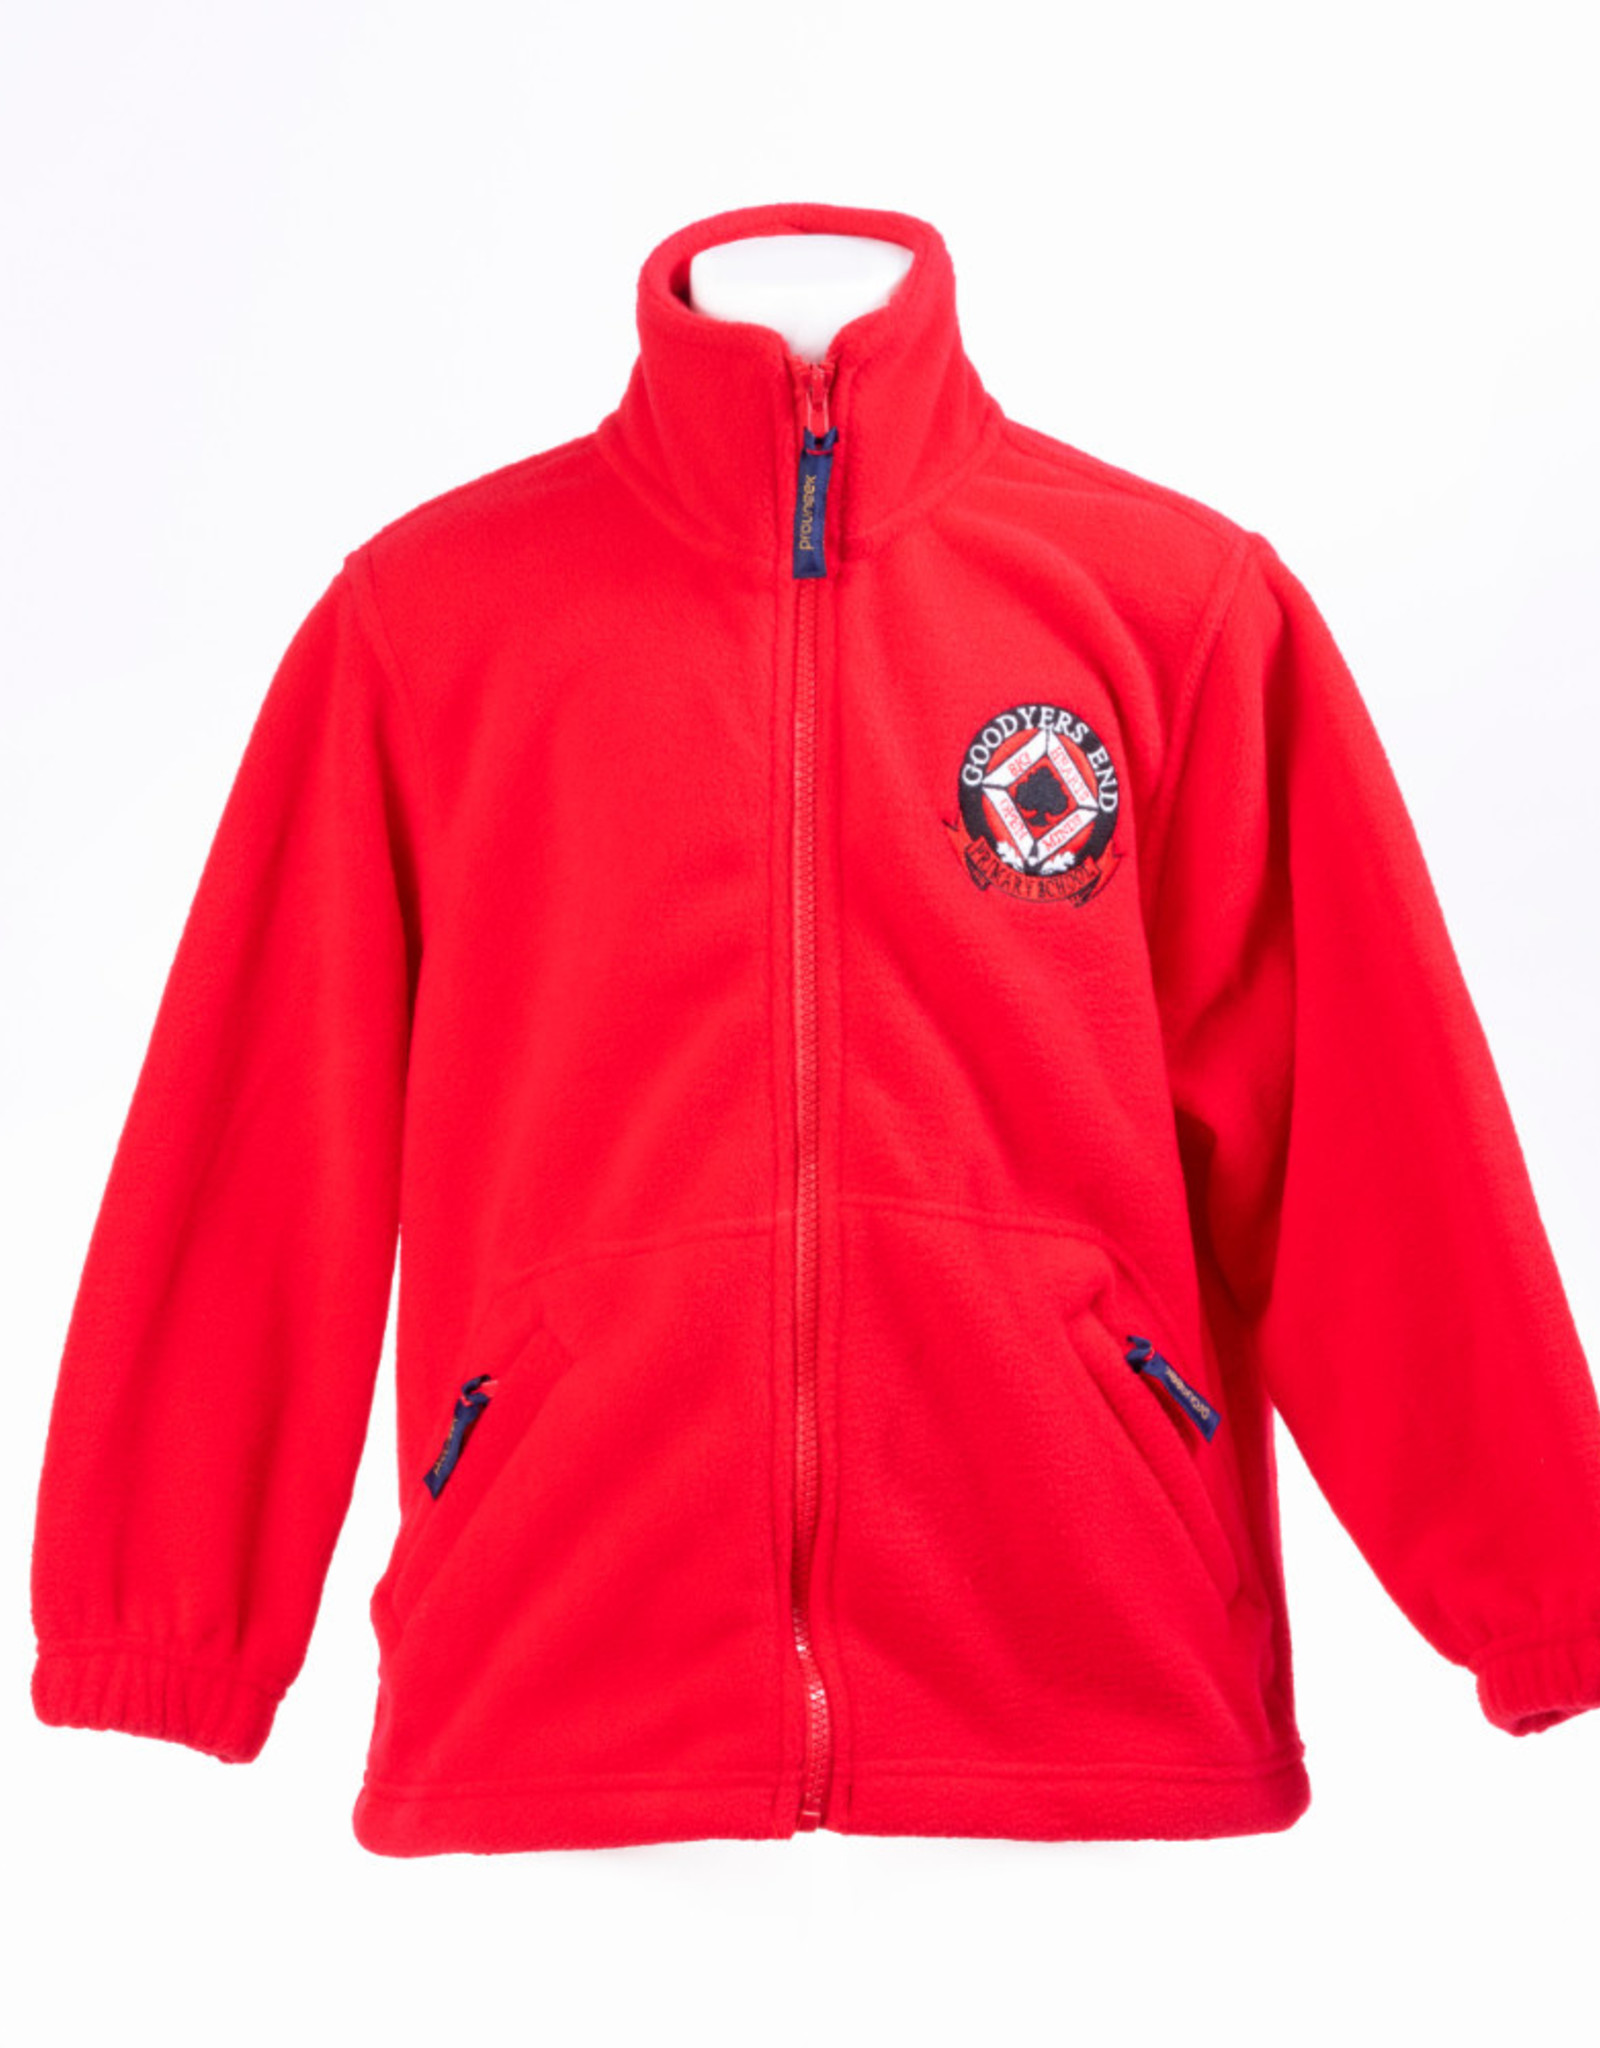 UNEEK Micro Fleece Adult Size - Goodyers End School